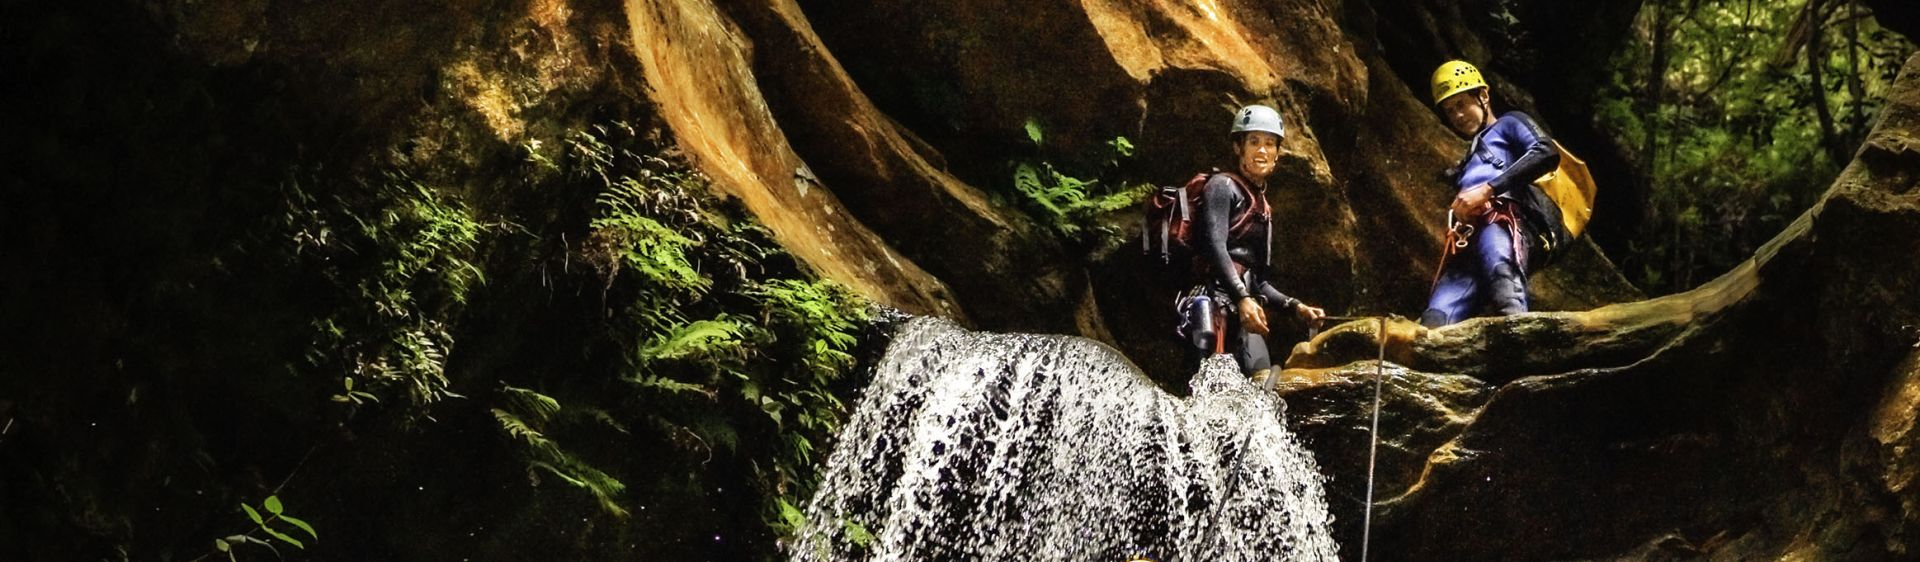 Two men abseiling at Empress Falls in the Blue Mountains